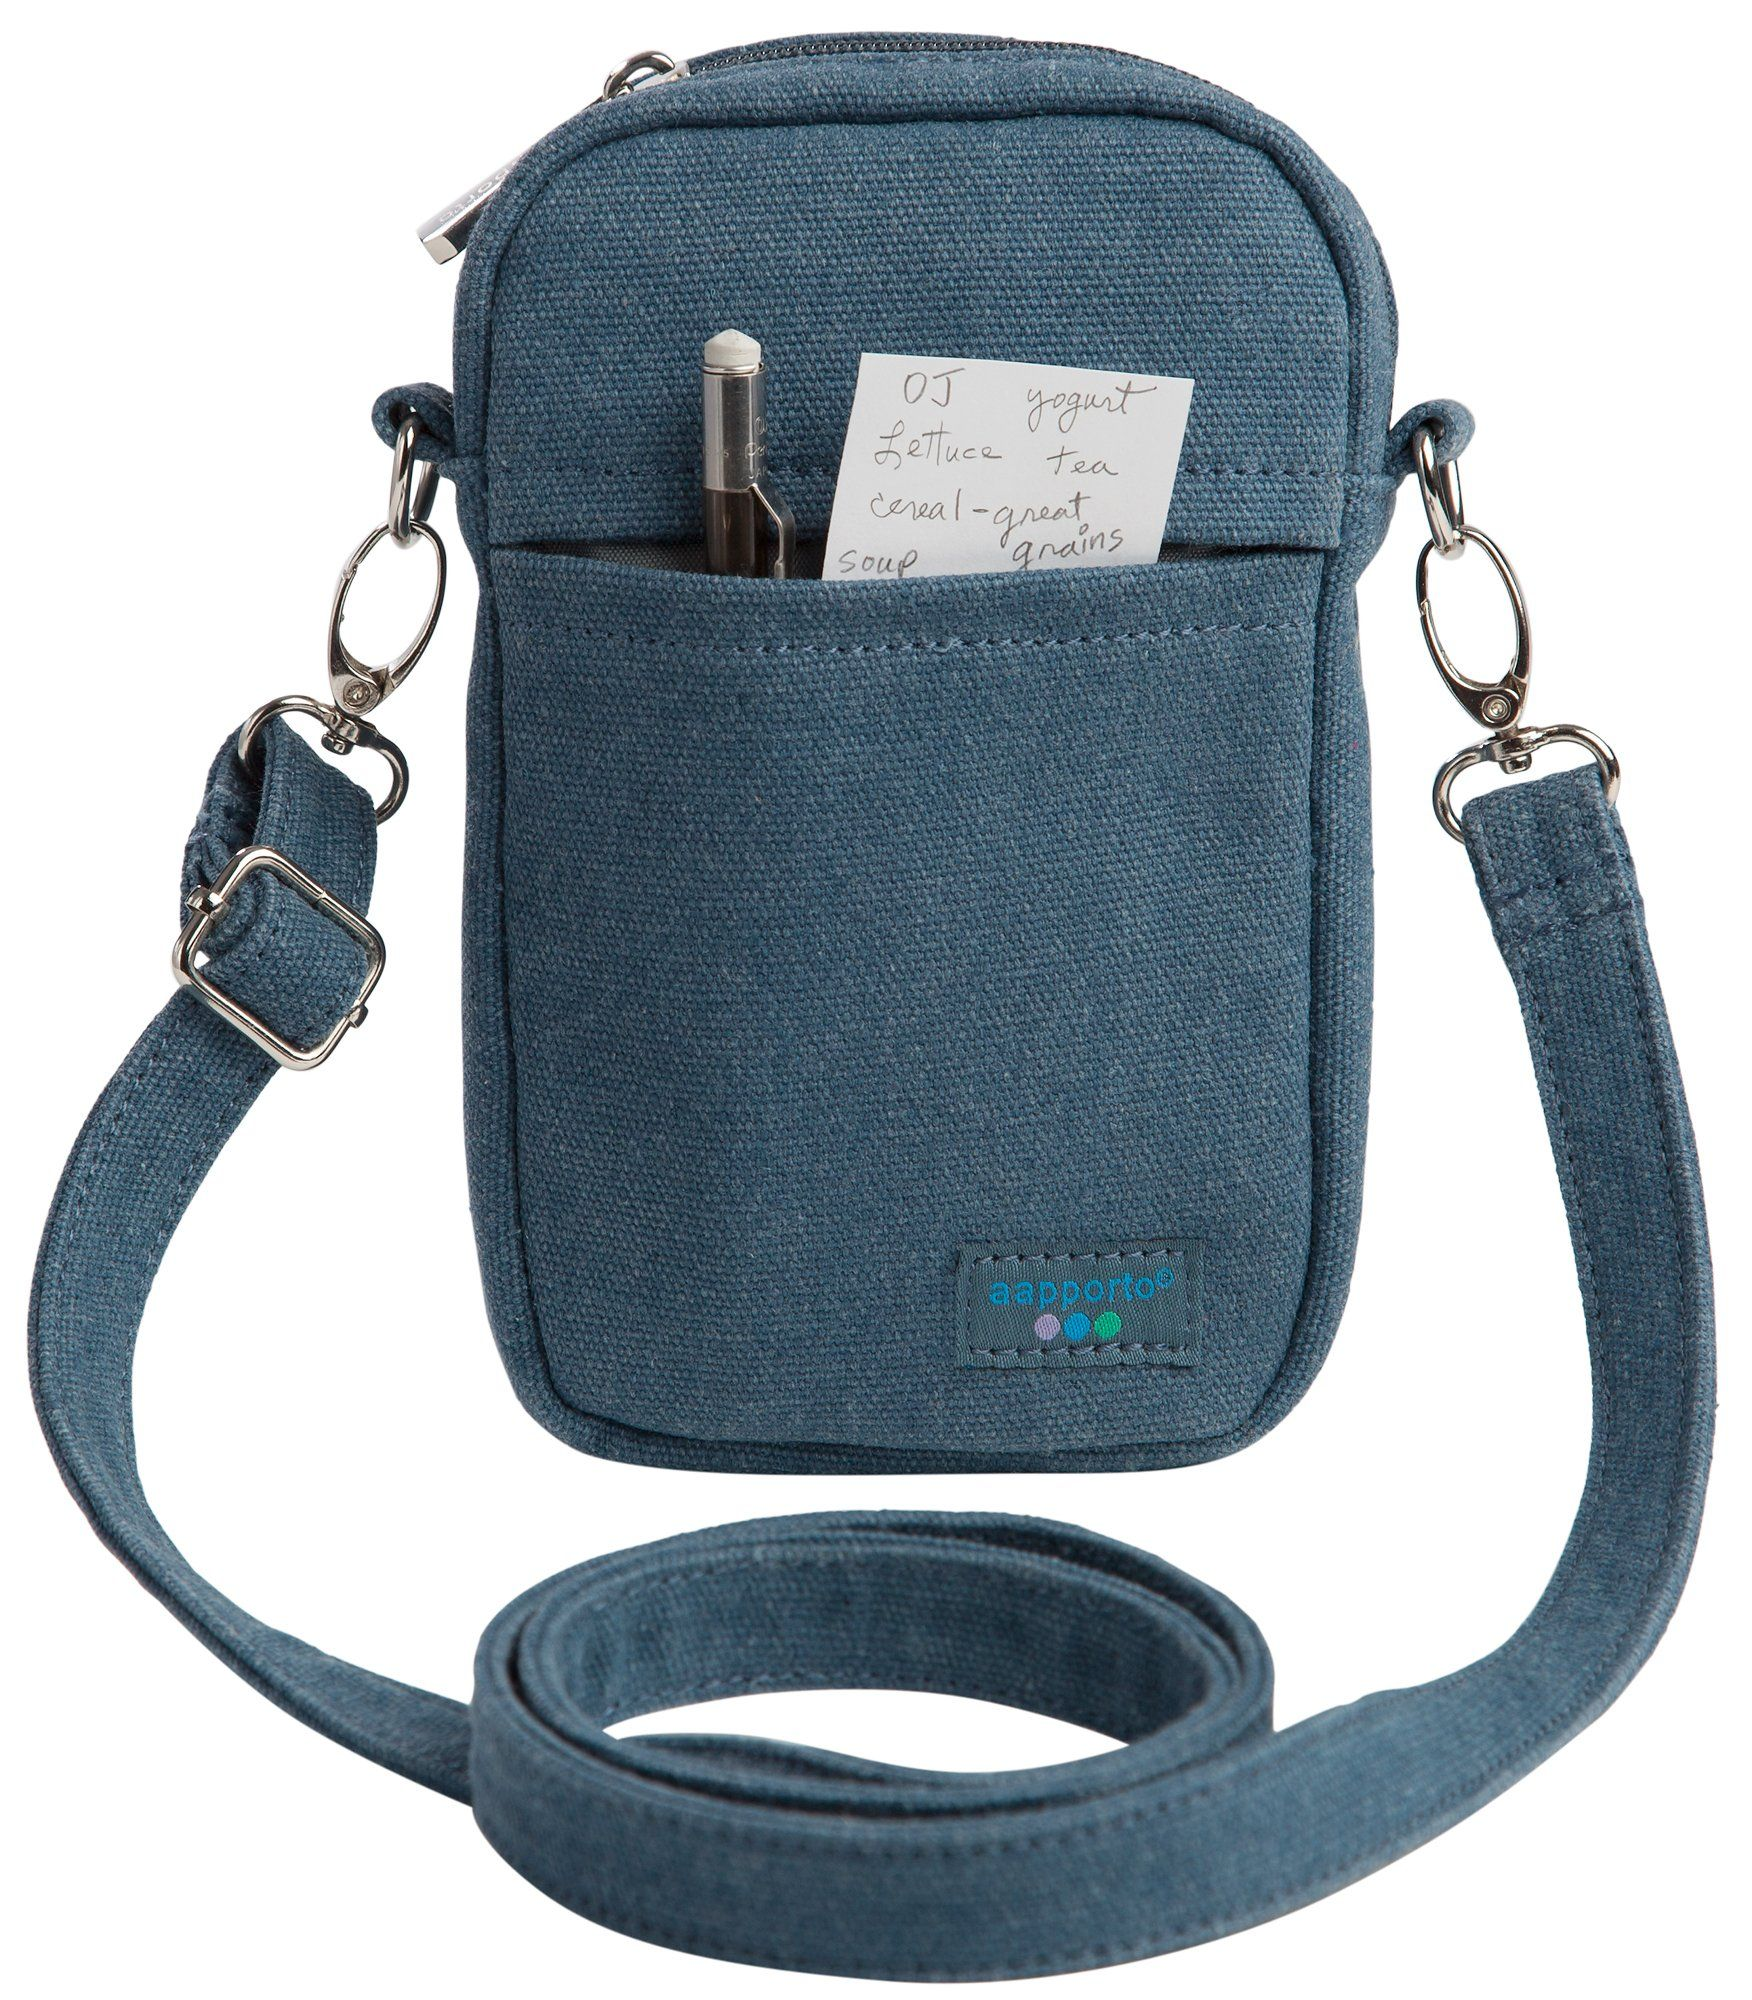 iphone purse case with shoulder strap